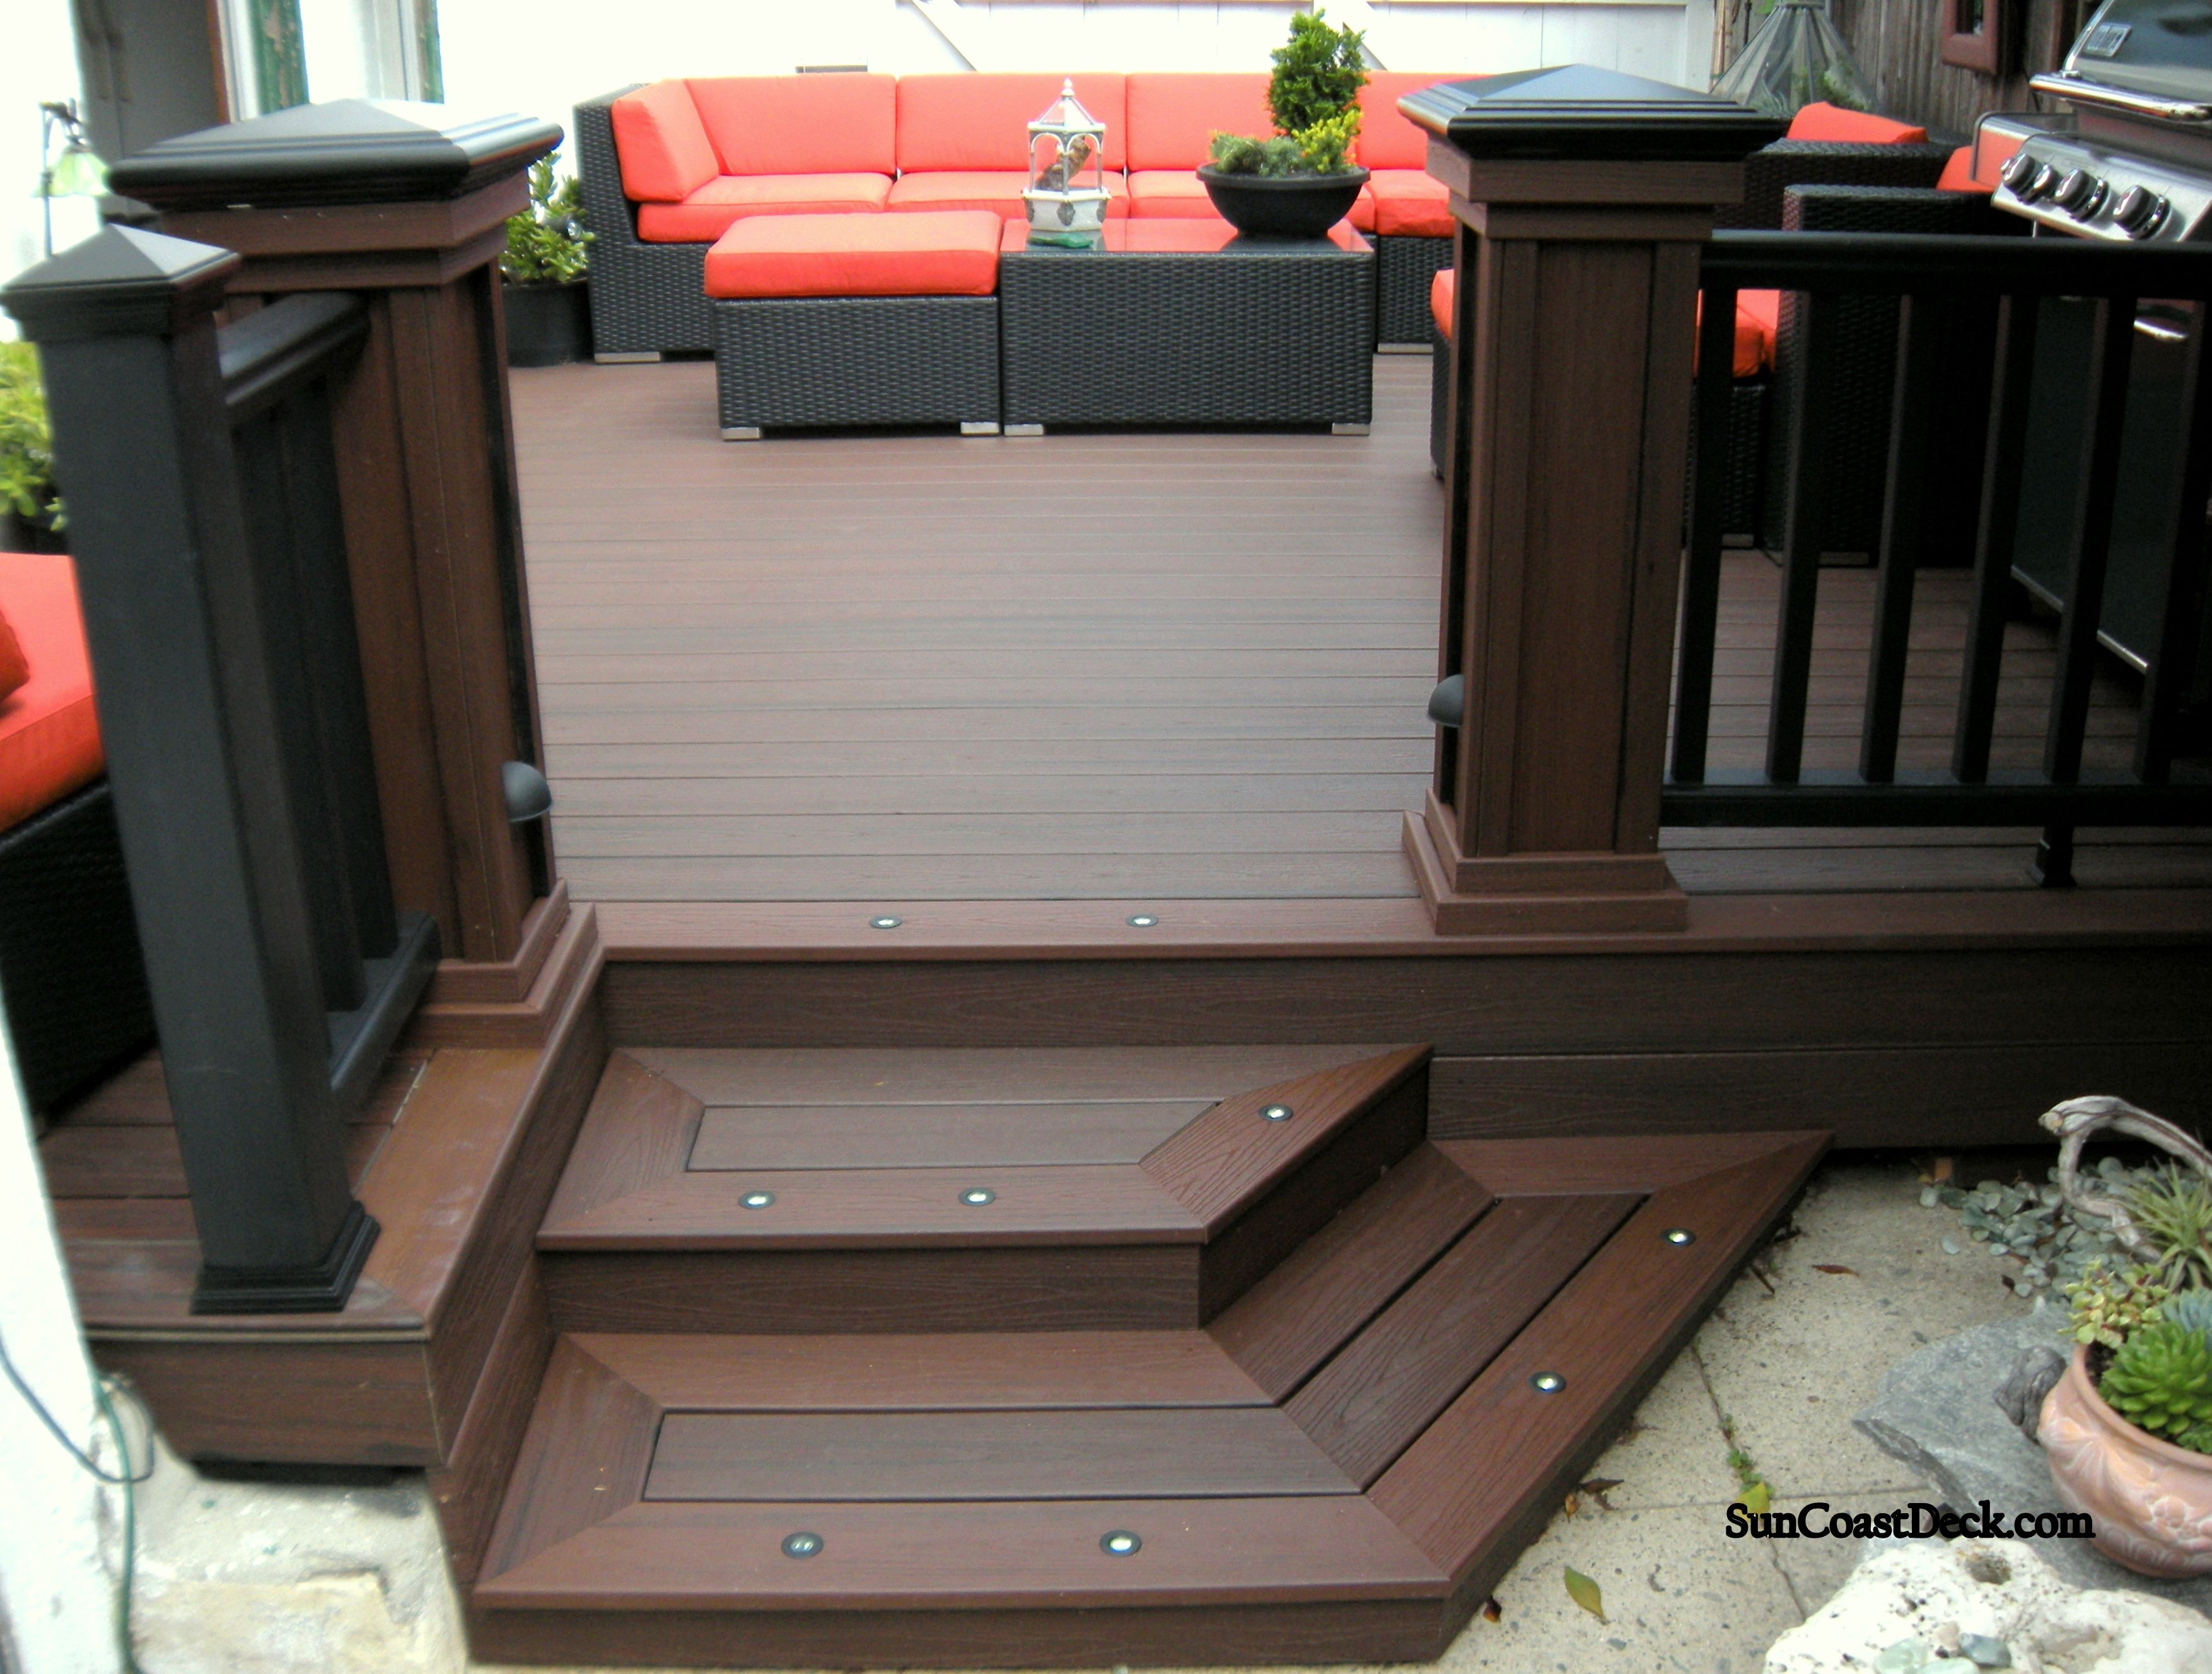 Trex Deck Design Ideas 1000 images about deck on pinterest decking decks and railings An Azek Deck With Trex Railings With Baroque Balusters Lighting Is Low Voltage Led Lighting Deck In Brambleton By Blue Moon Pinterest Decks